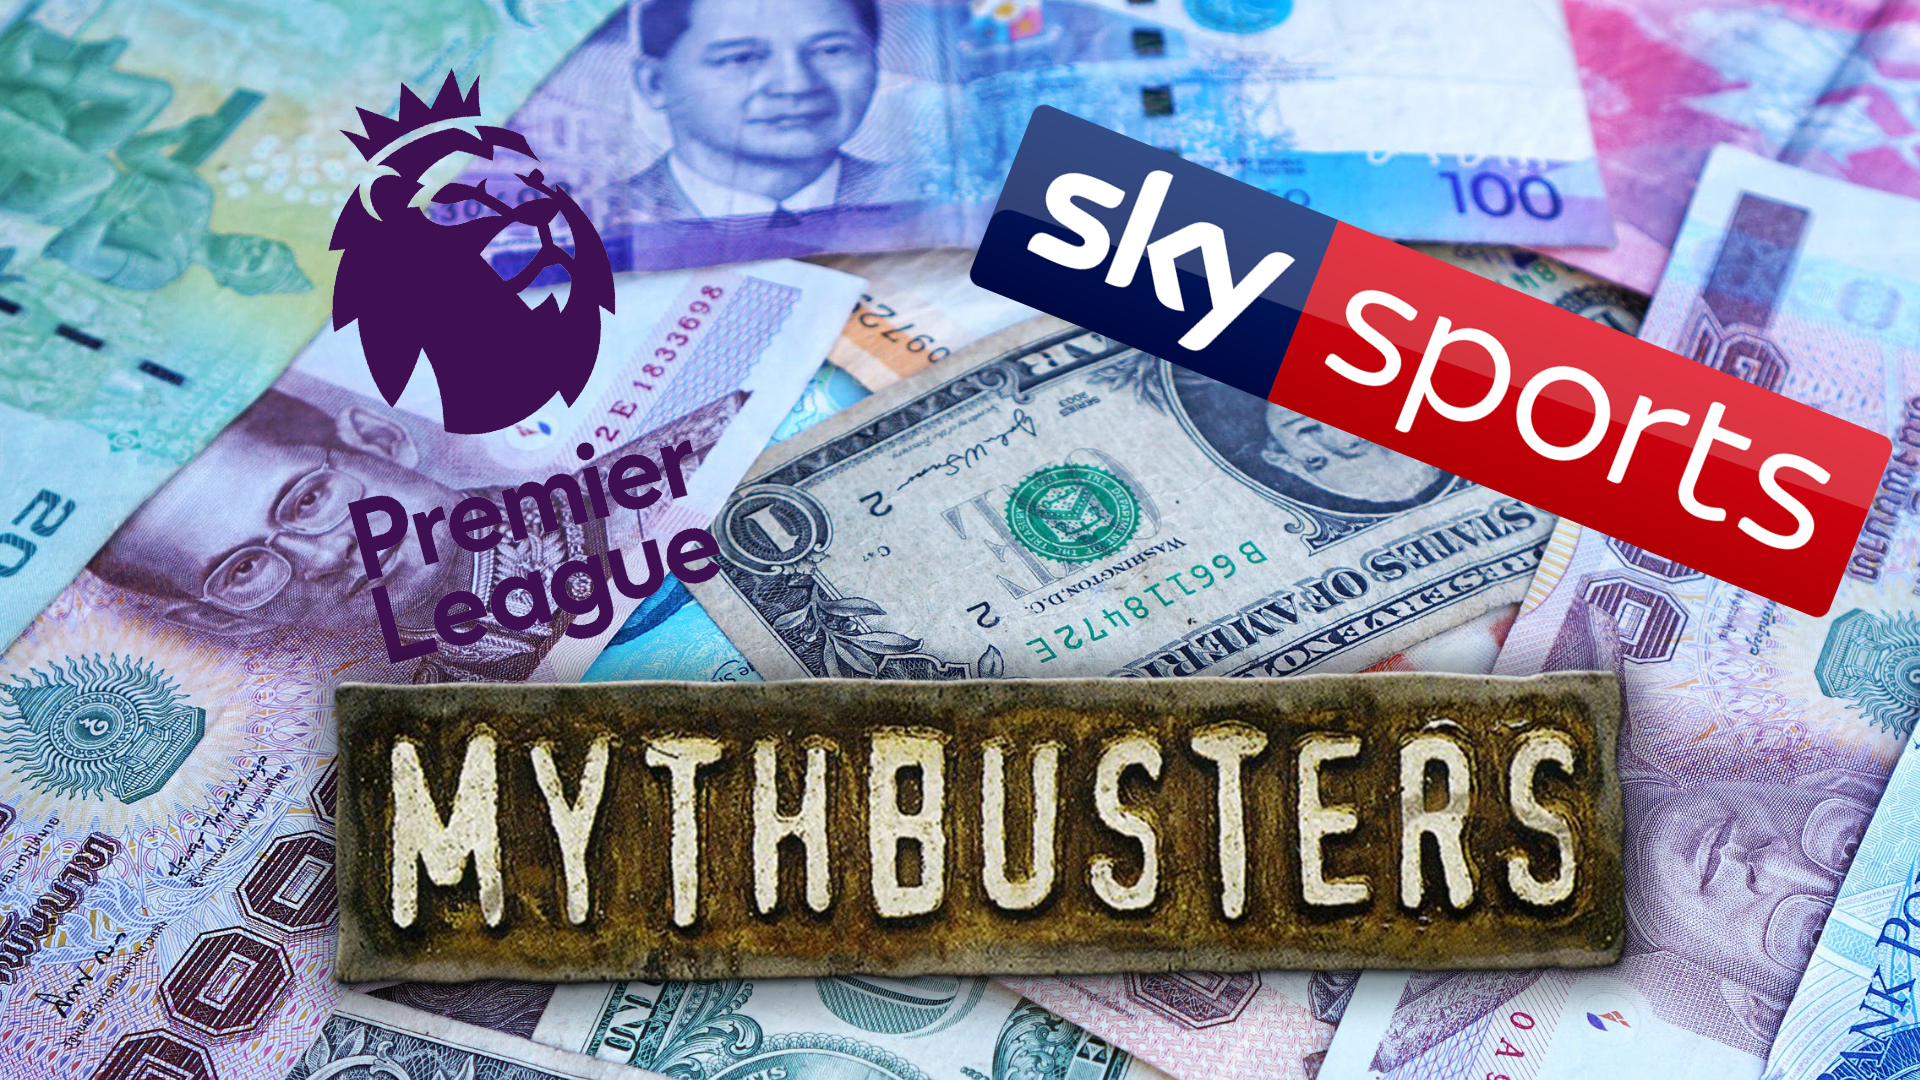 """Mythbusters: The Premier League most definitely is not the """"Greatest League in the World"""""""